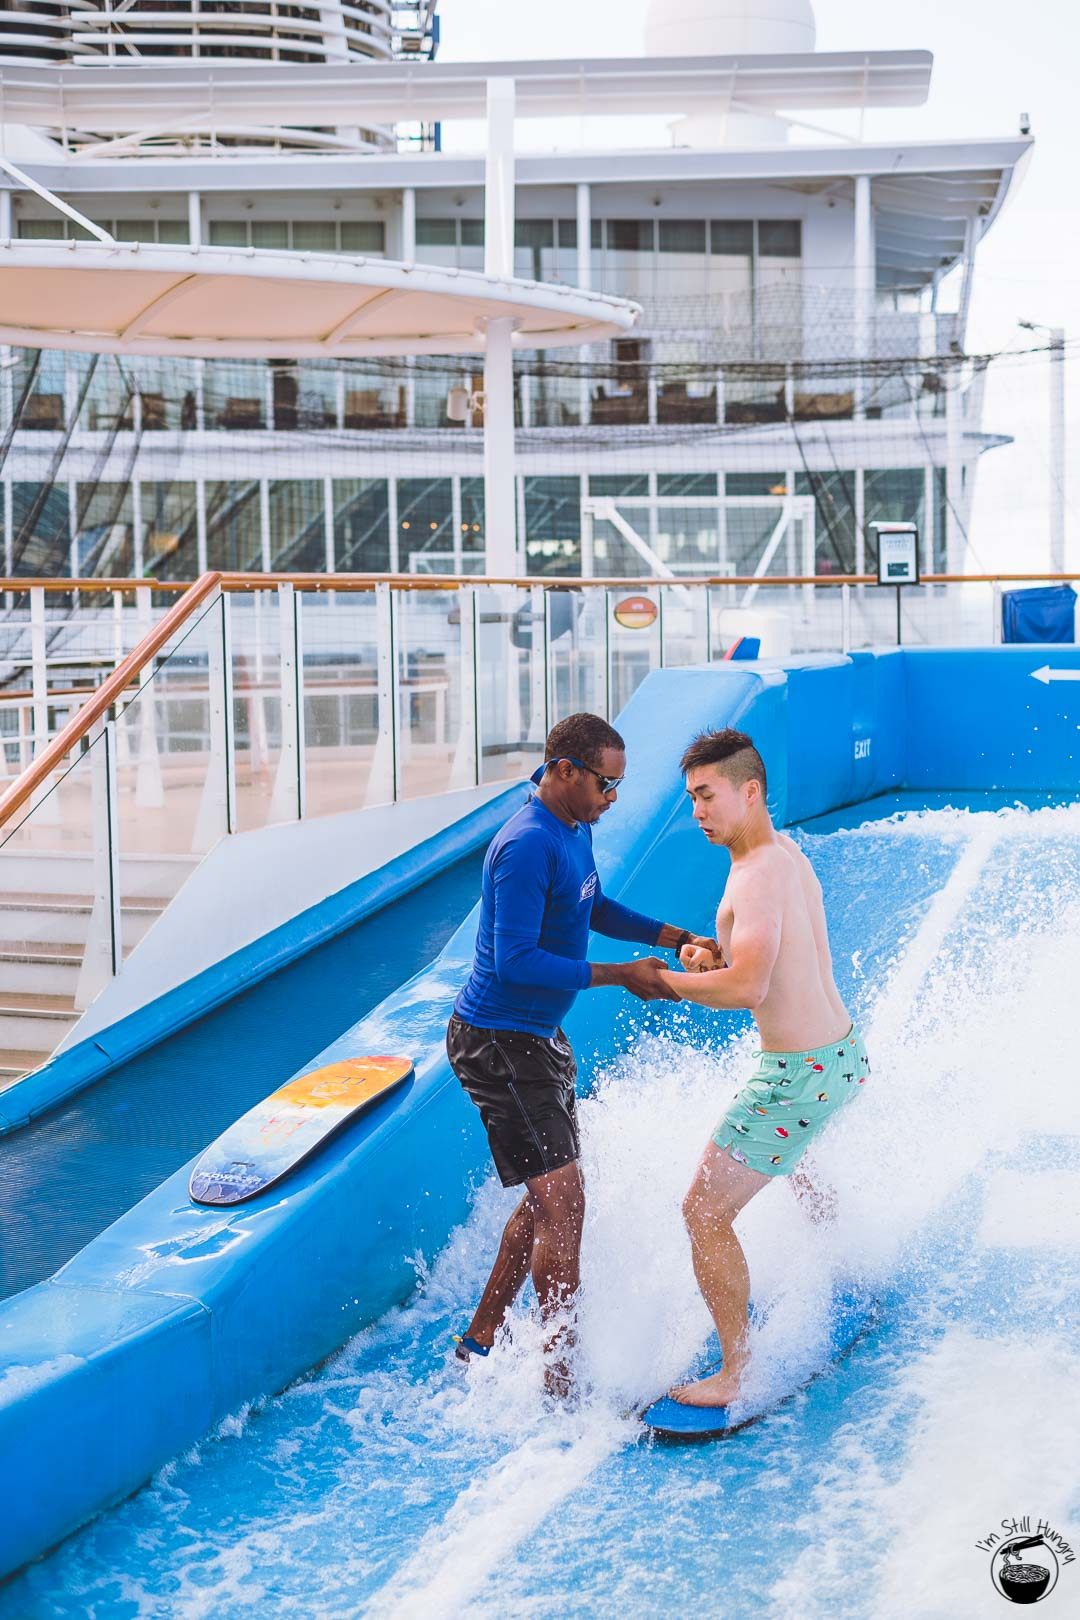 Royal Caribbean Allure of the Seas Flow Rider